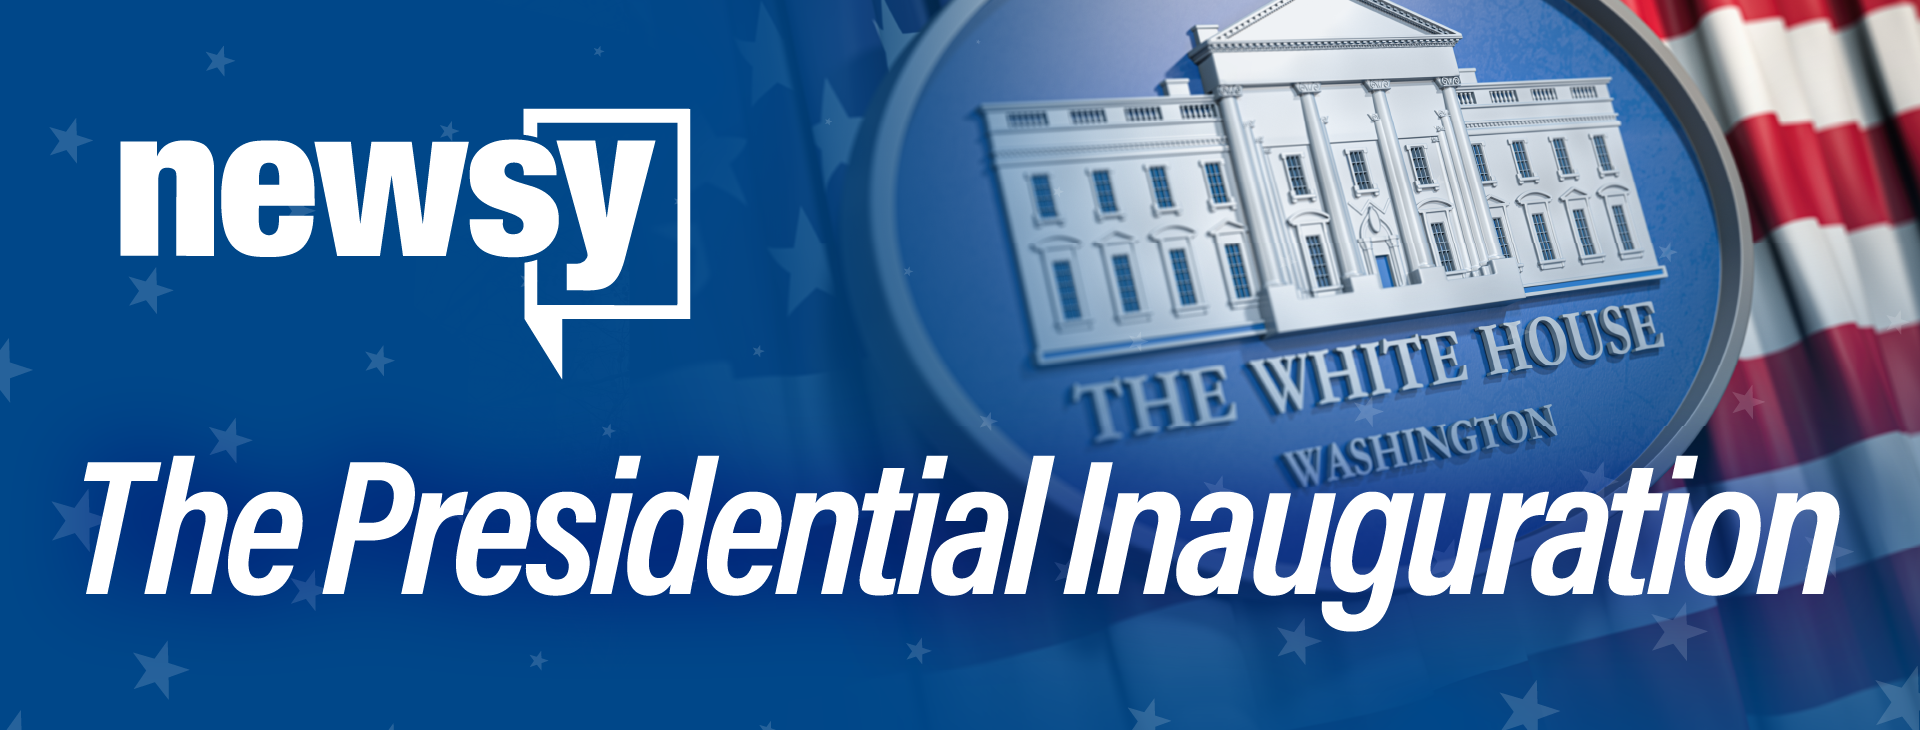 The Presidential Inauguration